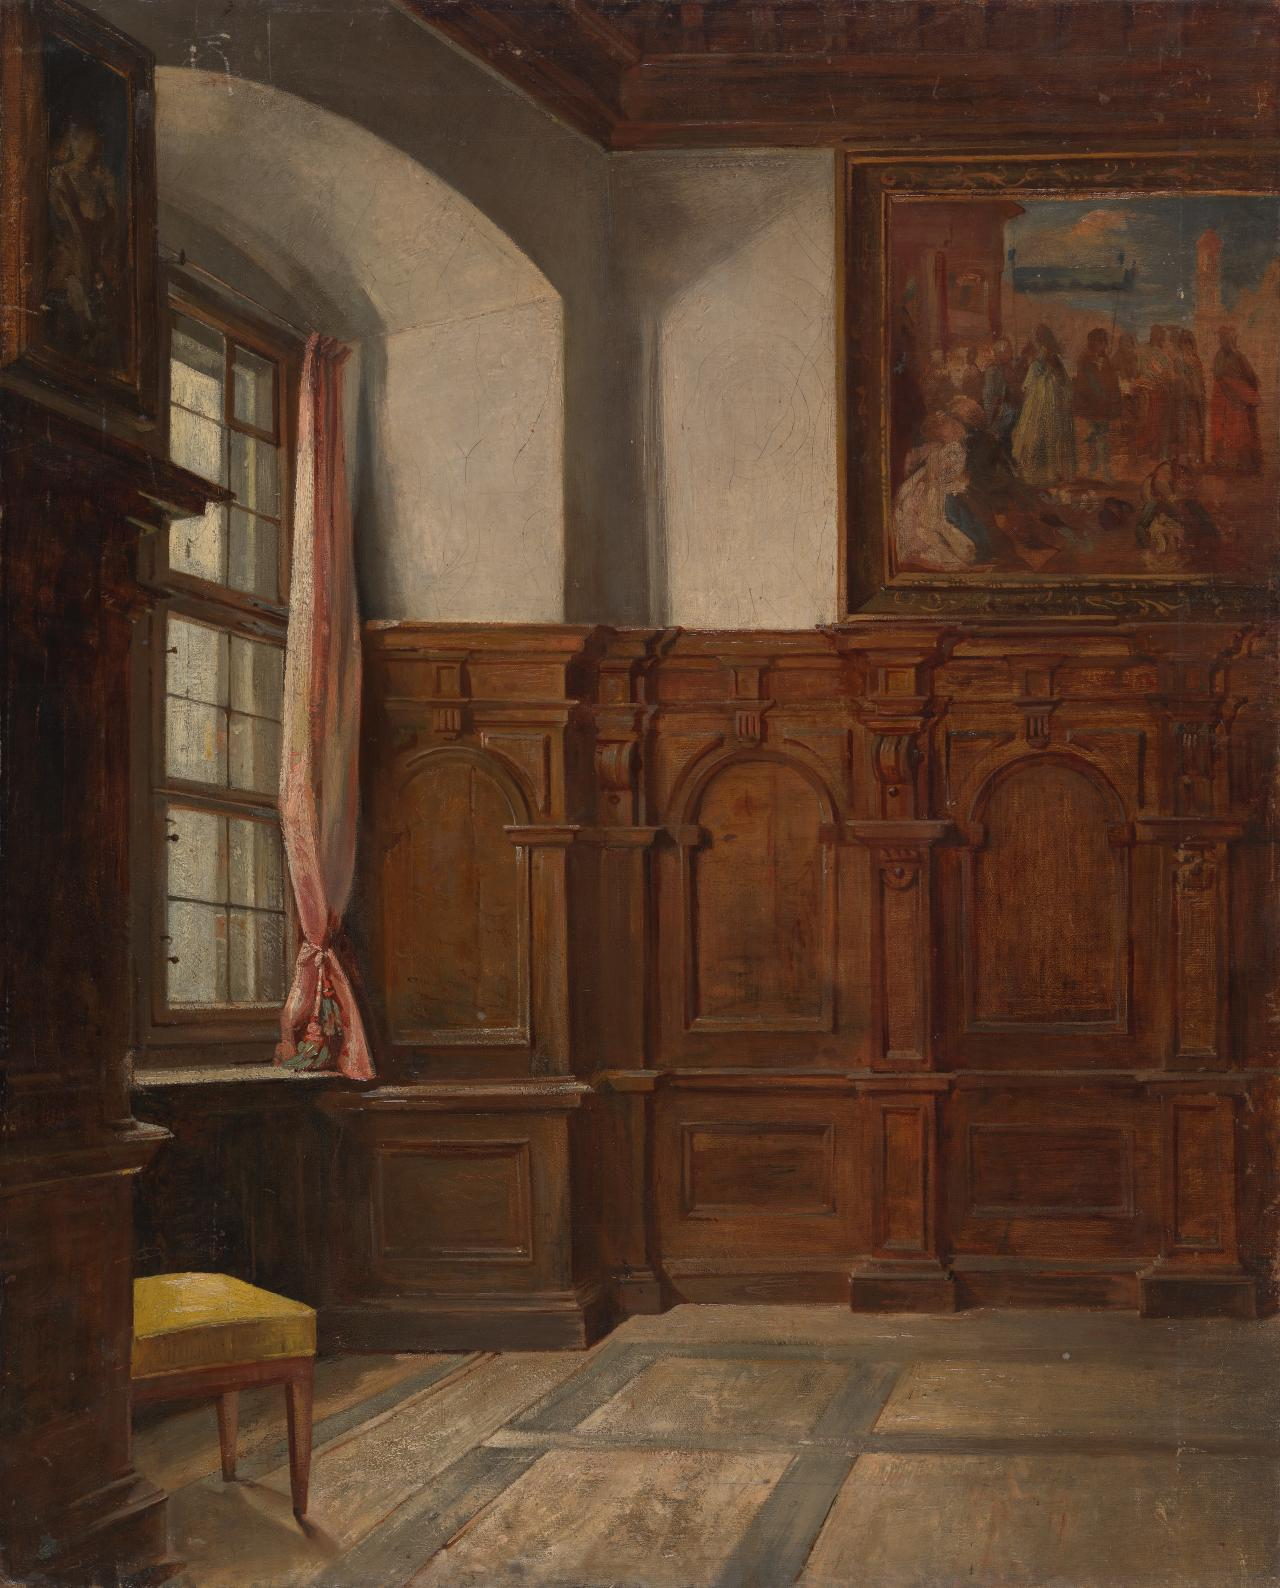 Study of interior of convent room